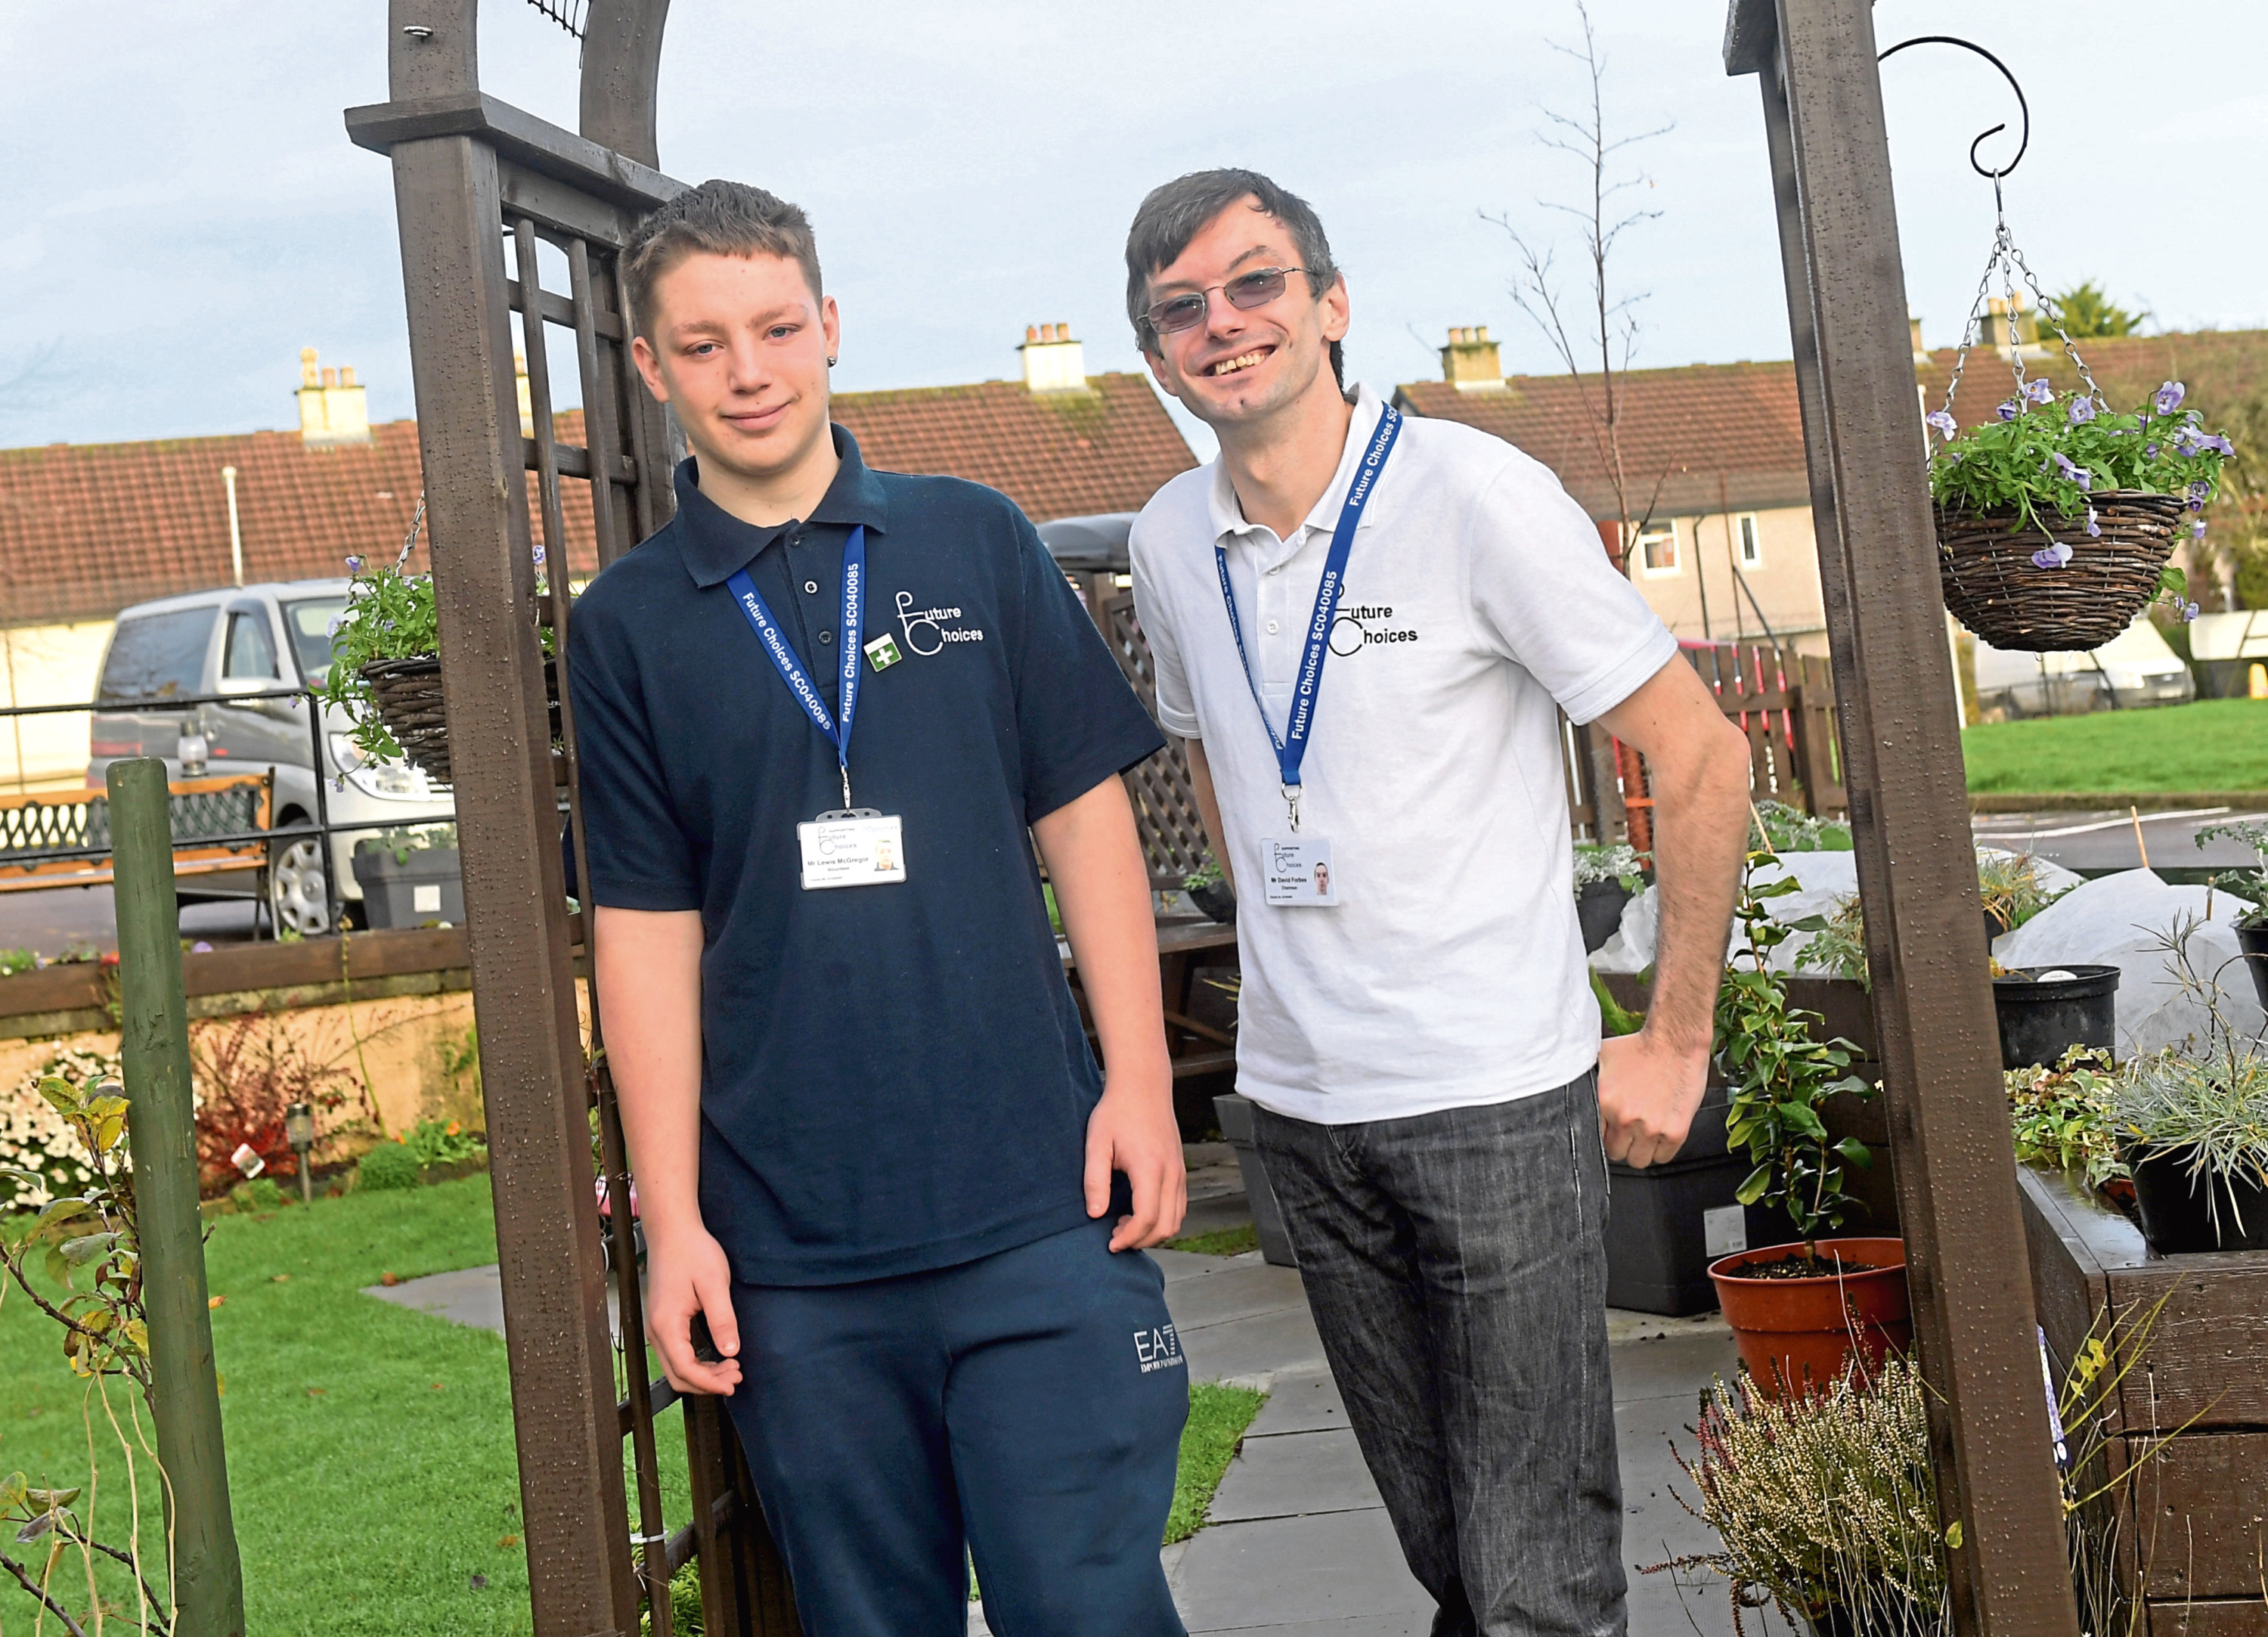 Future Choices volunteer Lewis McGregor with chairman David Forbes